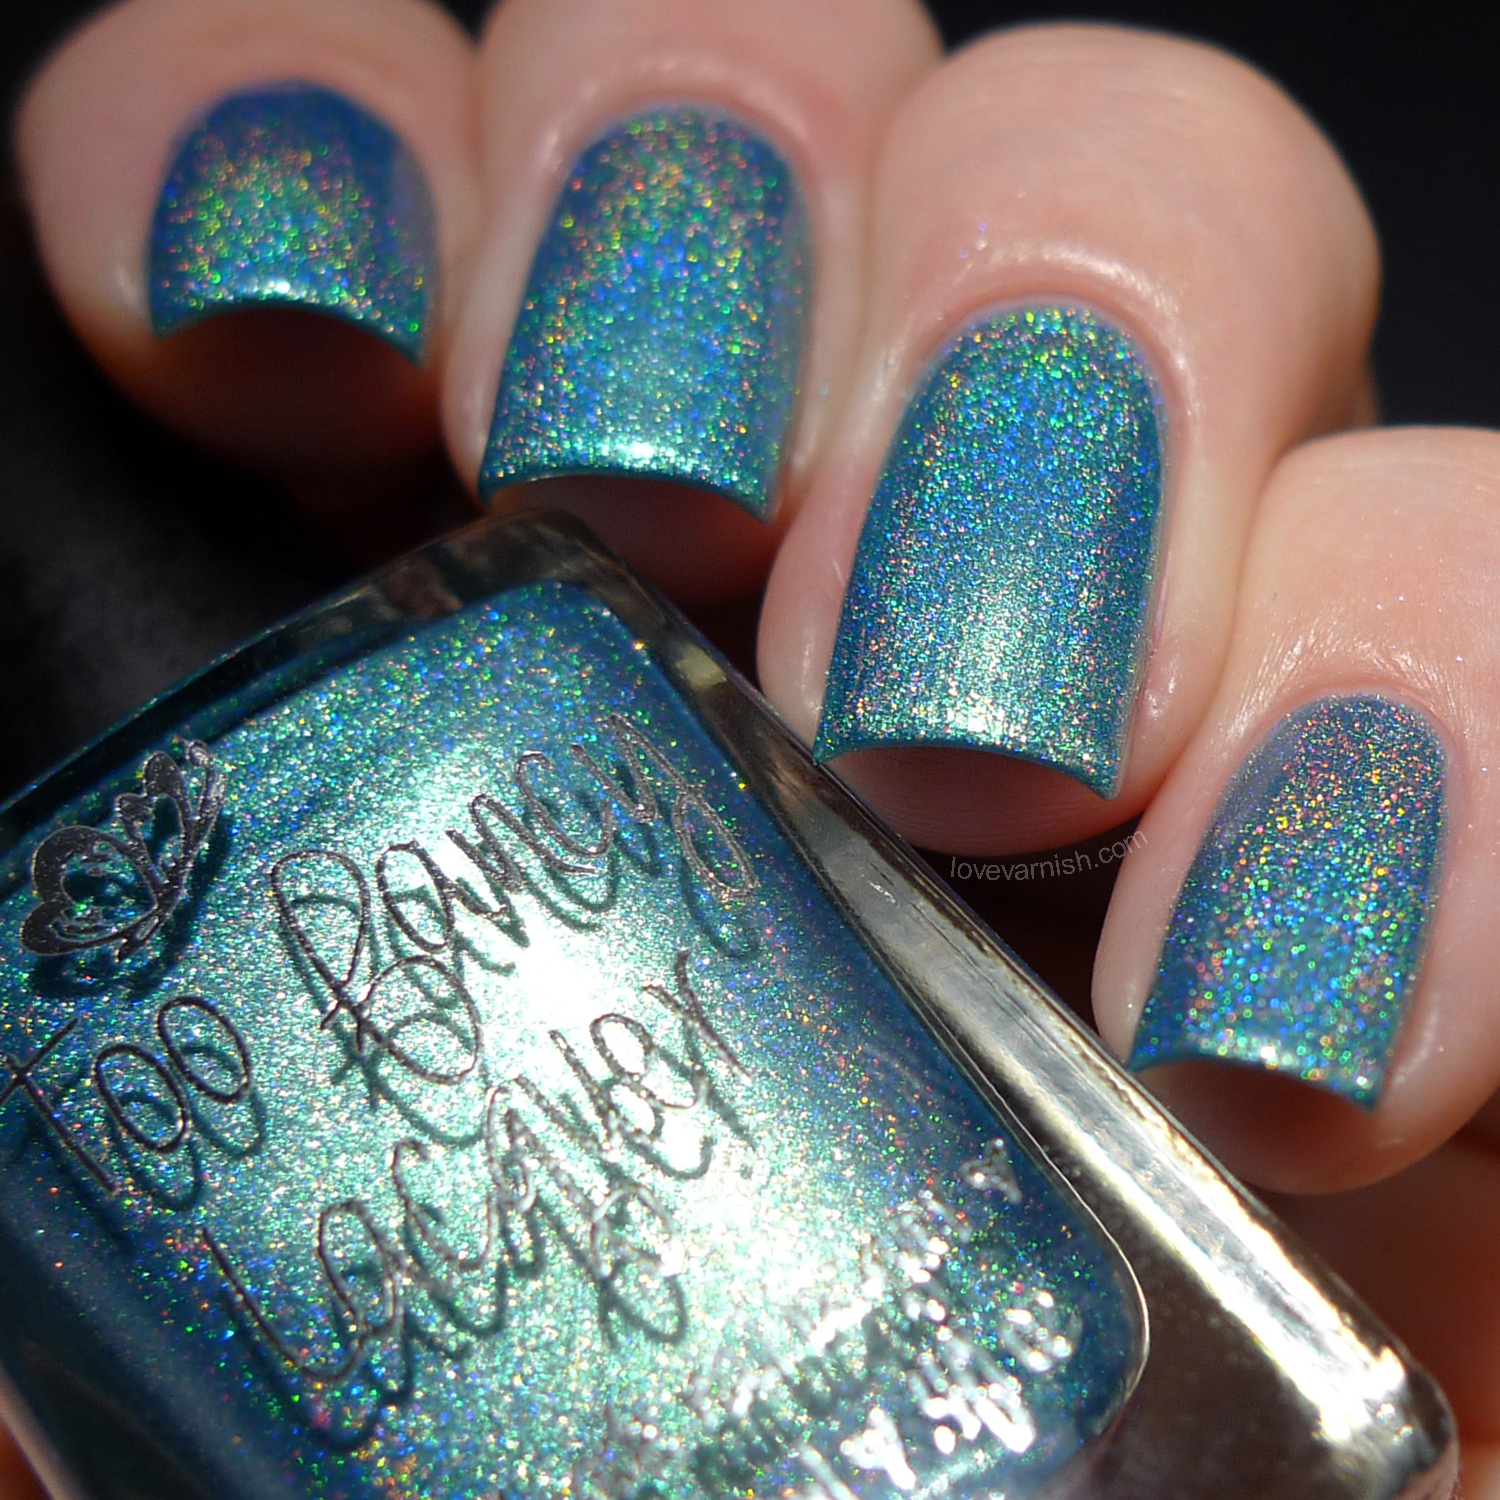 Too Fancy Lacquer The Sizzling Collection Starry Eyes